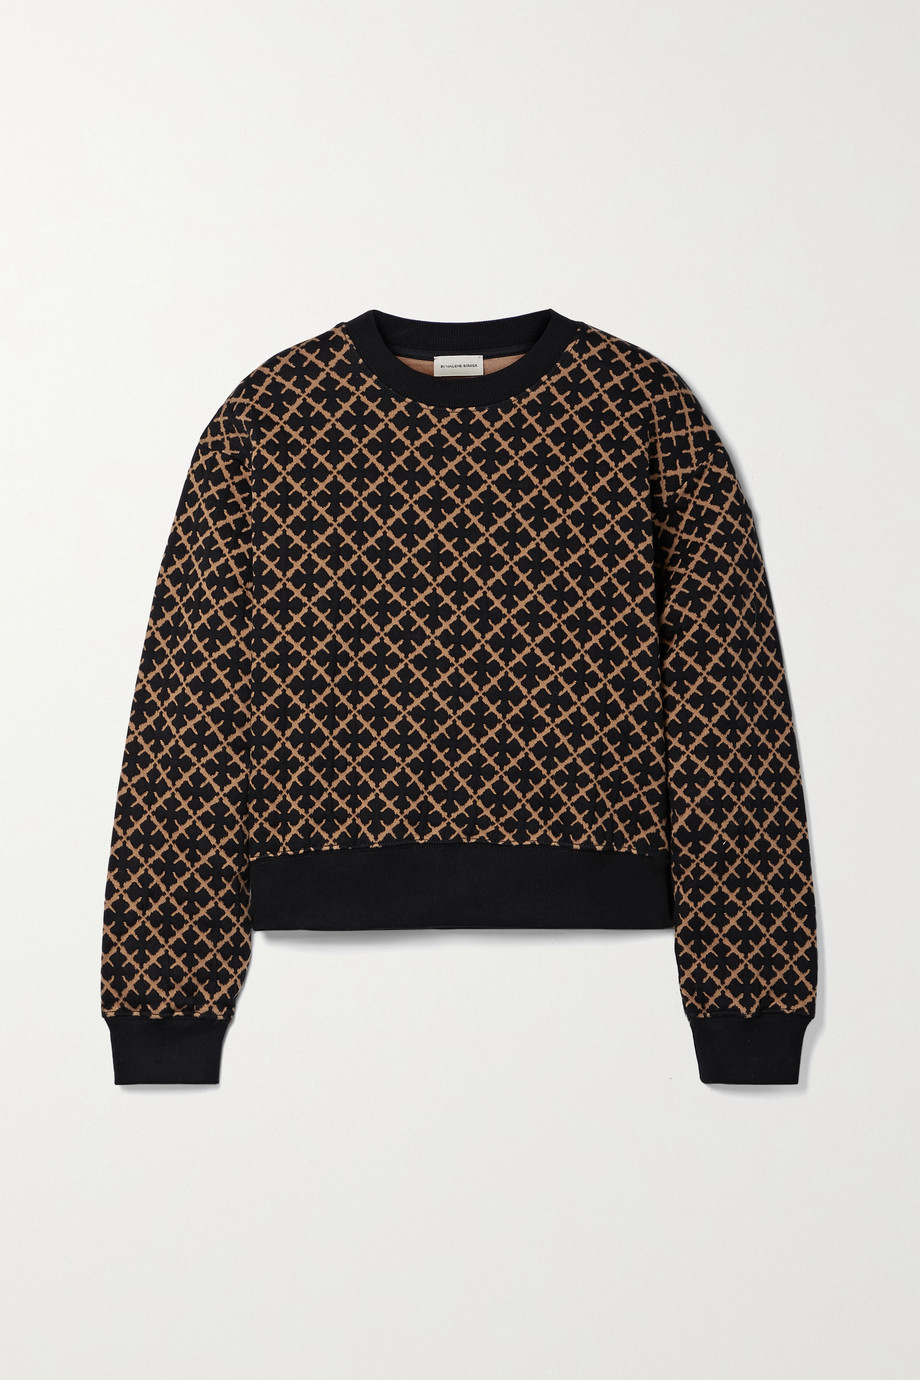 BY MALENE BIRGER Yasmia cotton-blend jacquard sweater